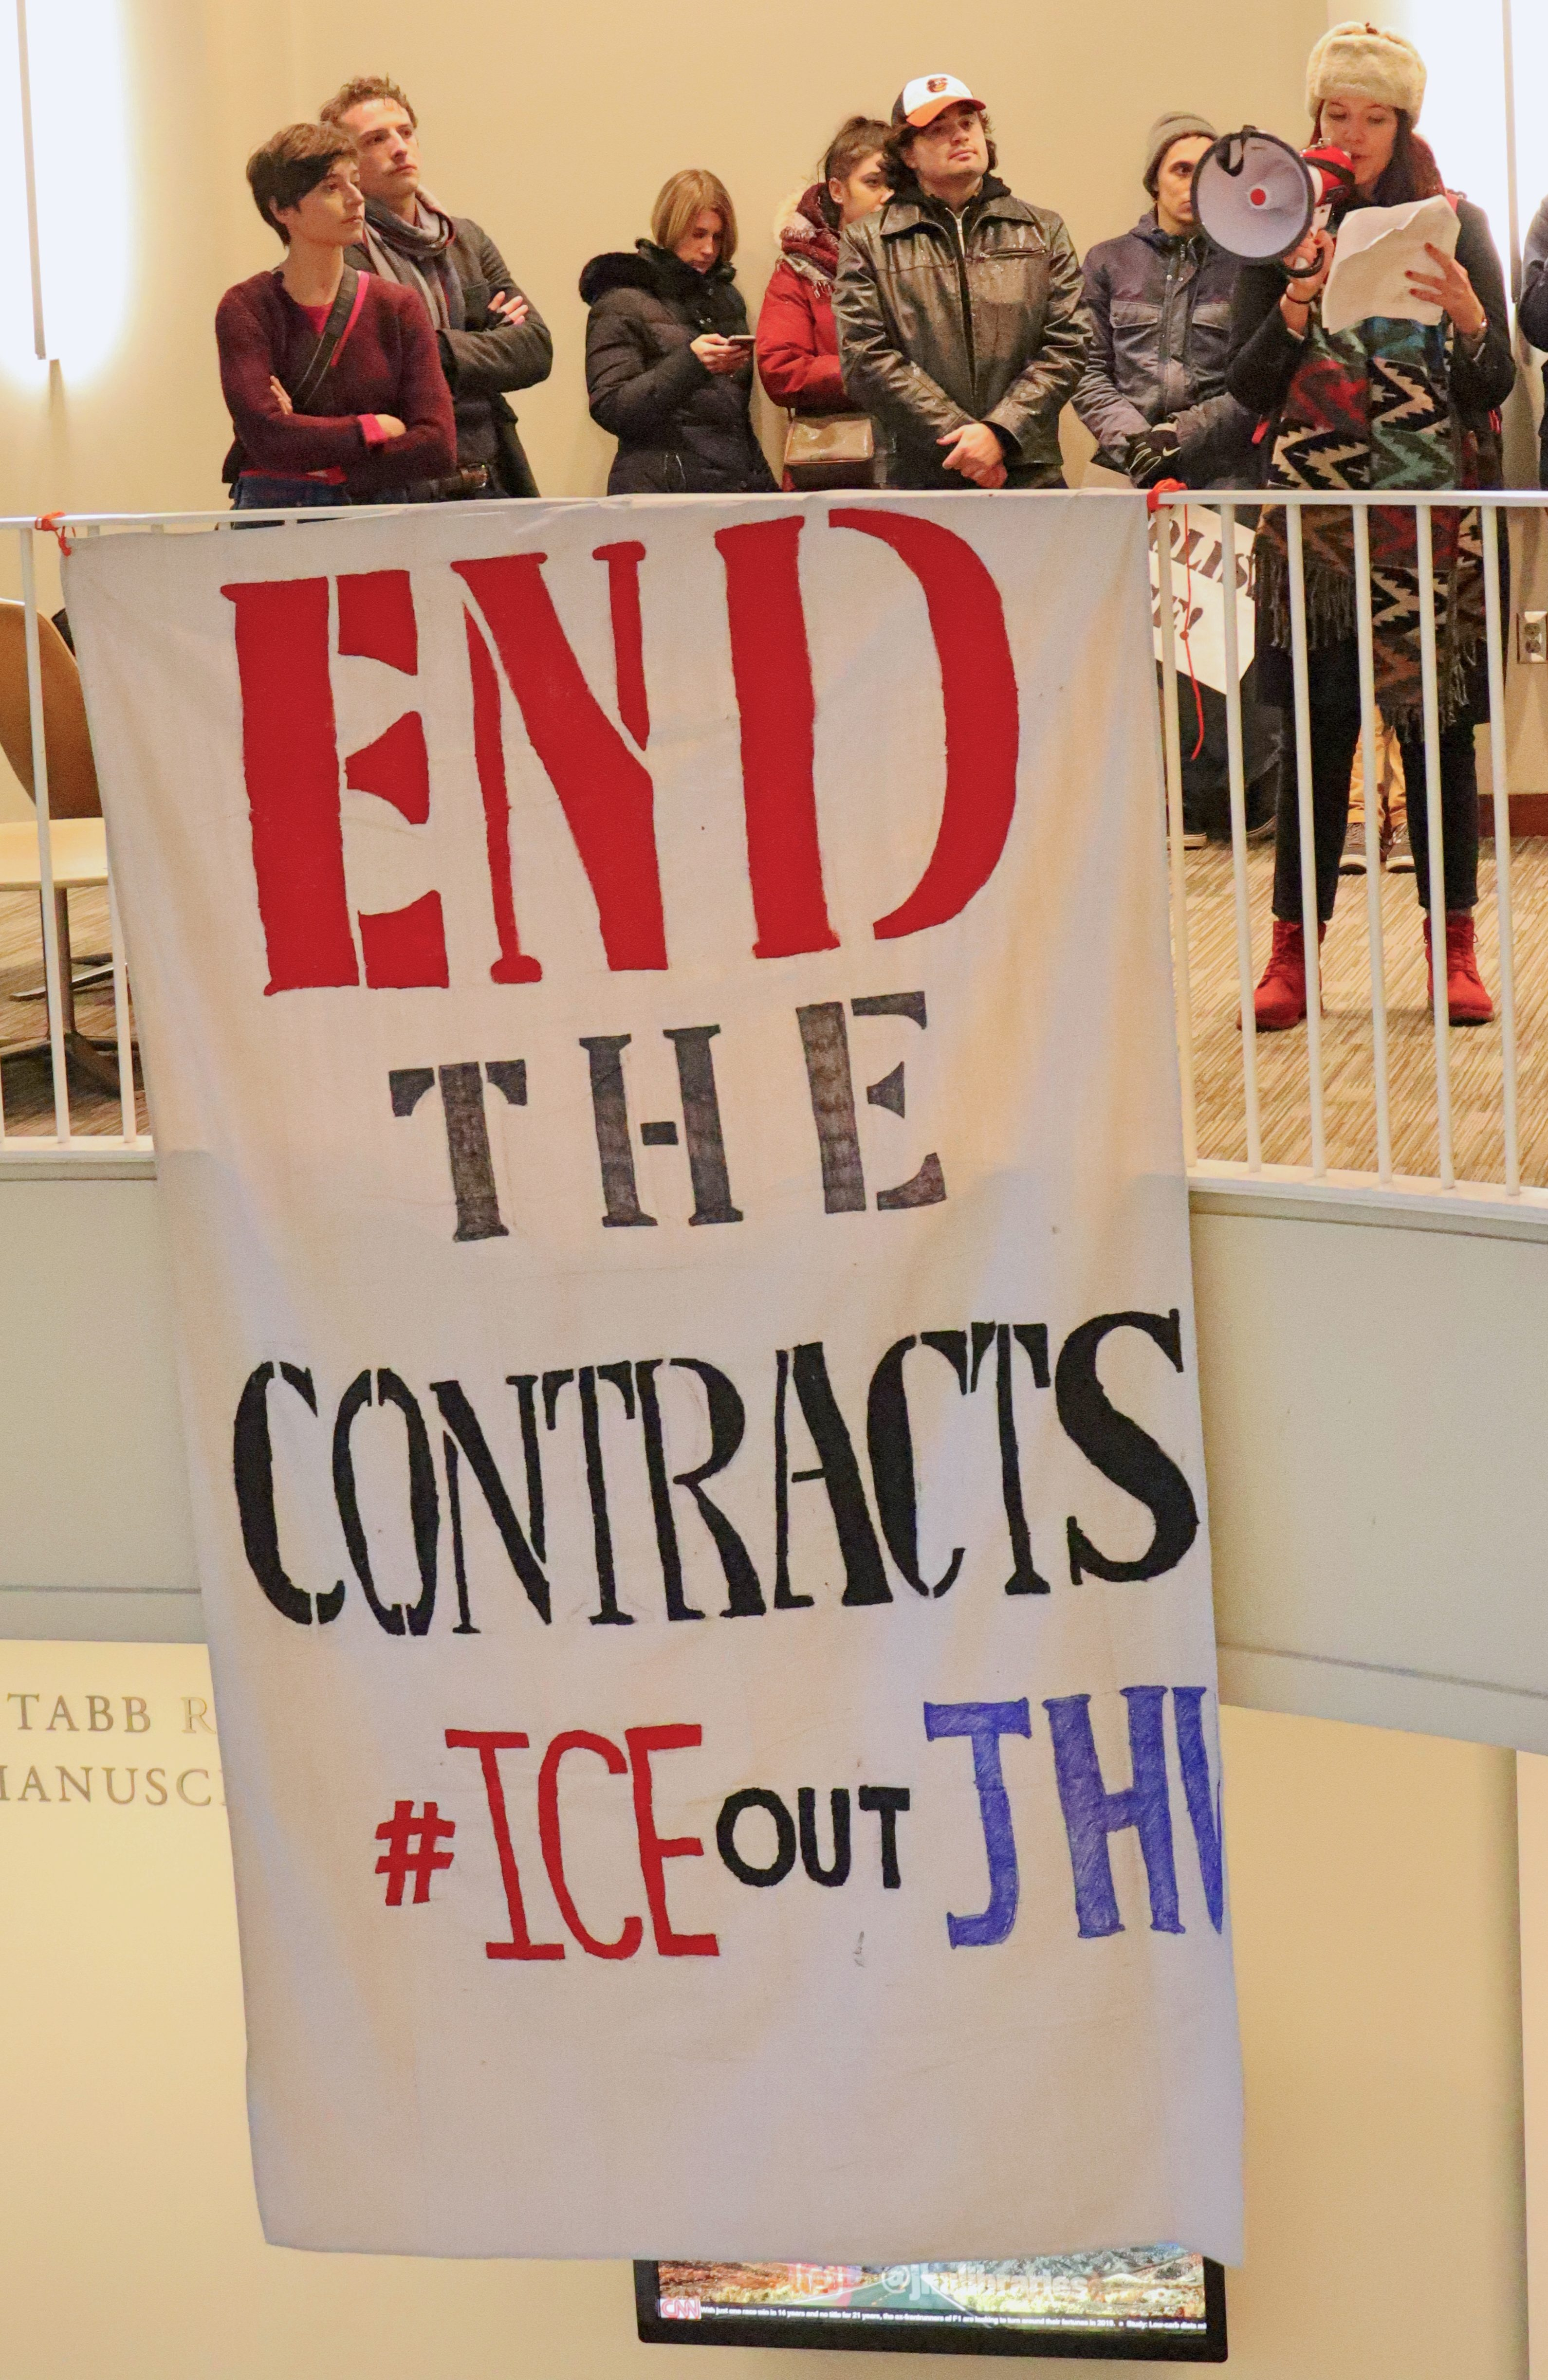 "A group of people stand on the upper level balcony of Brody as in front of them a large banner hangs down off the railing proclaiming ""END THE CONTRACTS #ICEoutjhu"""